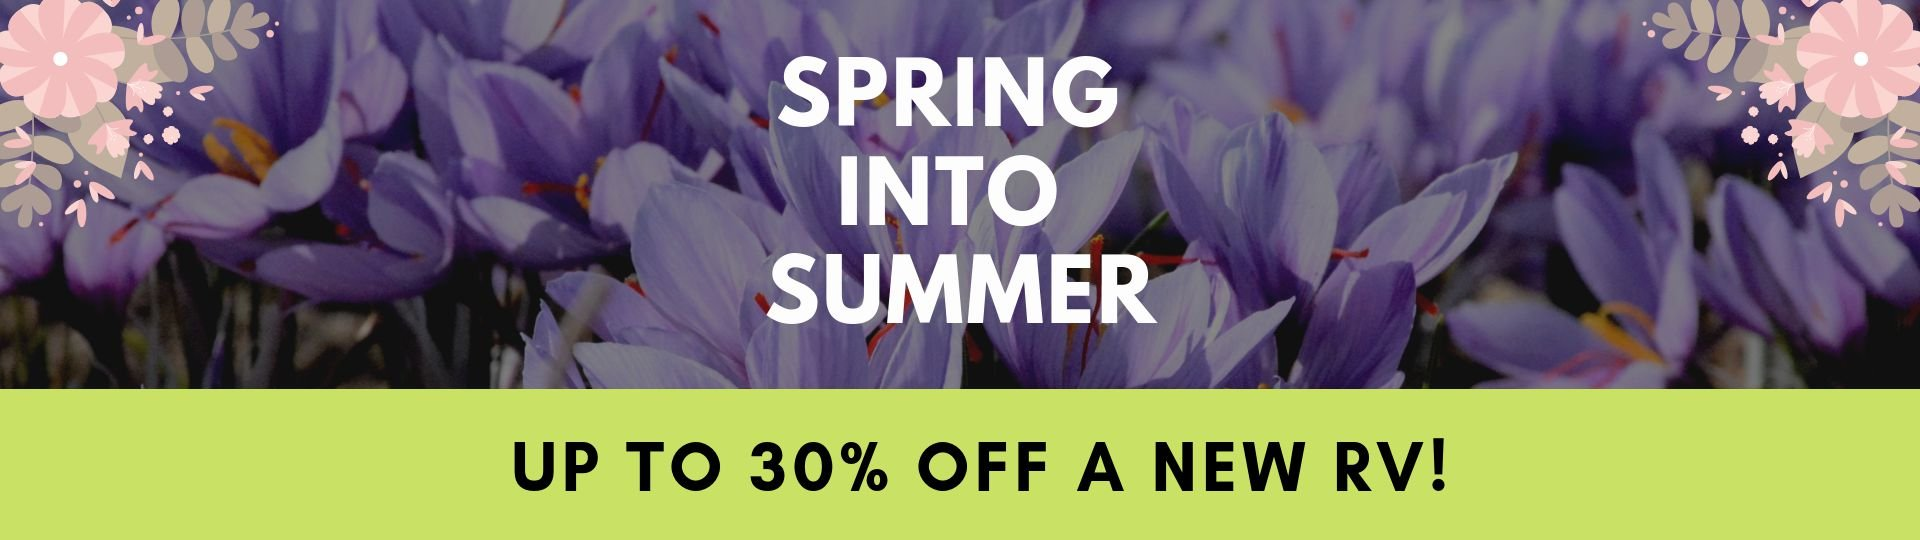 Spring into Summer Sale - Slide Image